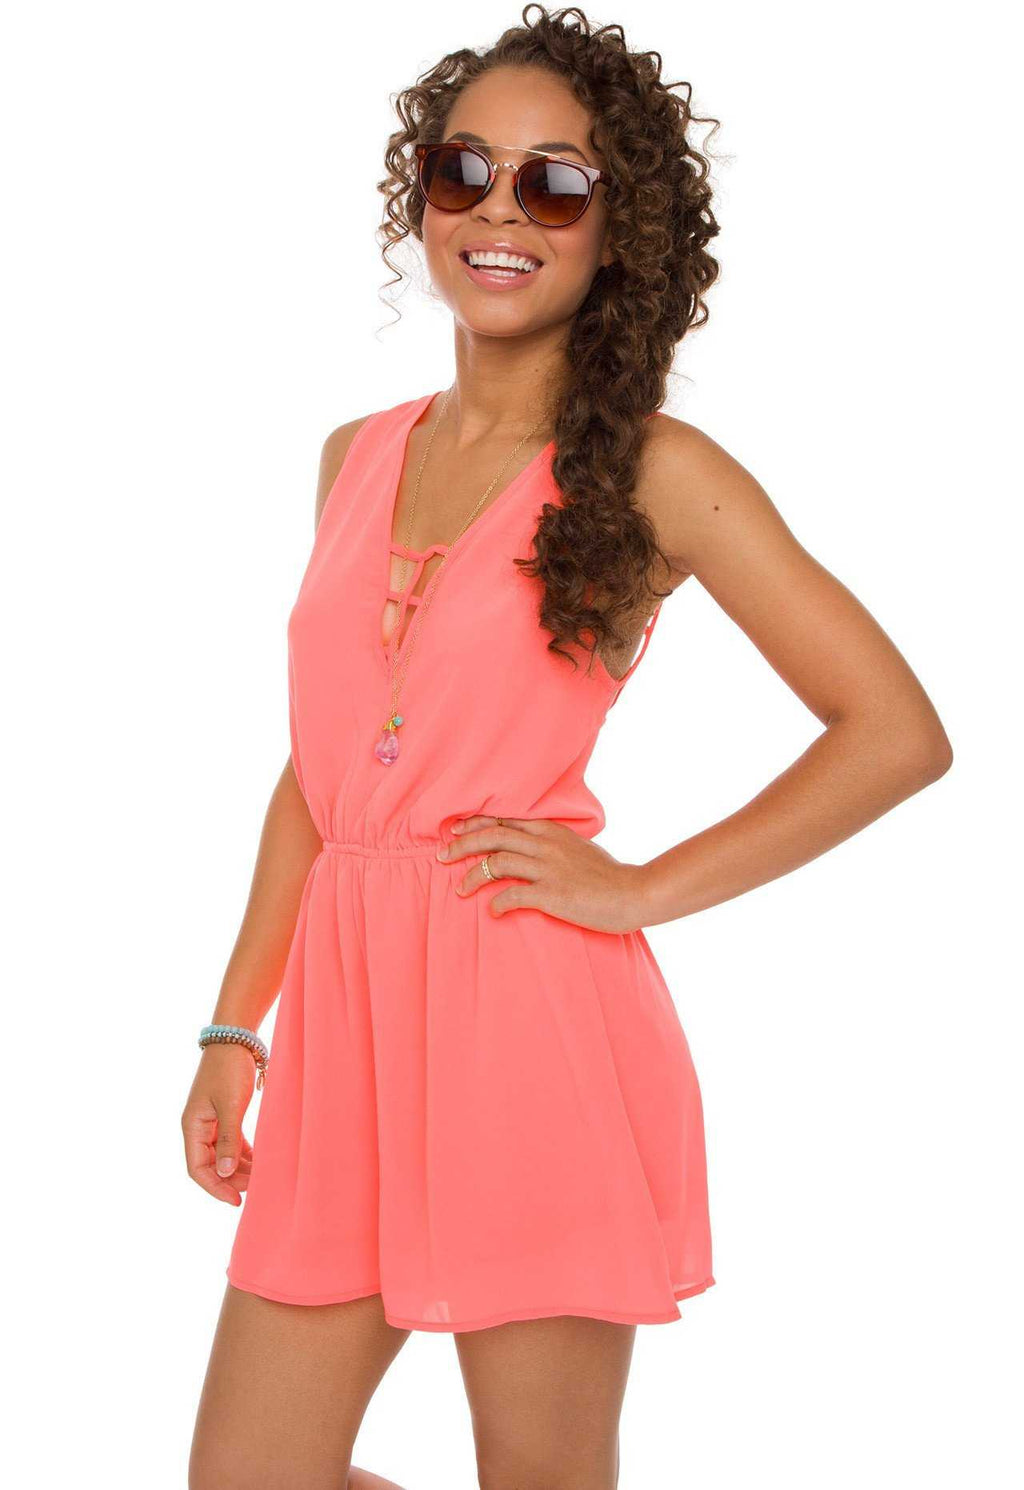 Rompers - Off The Grid Romper - Neon Coral